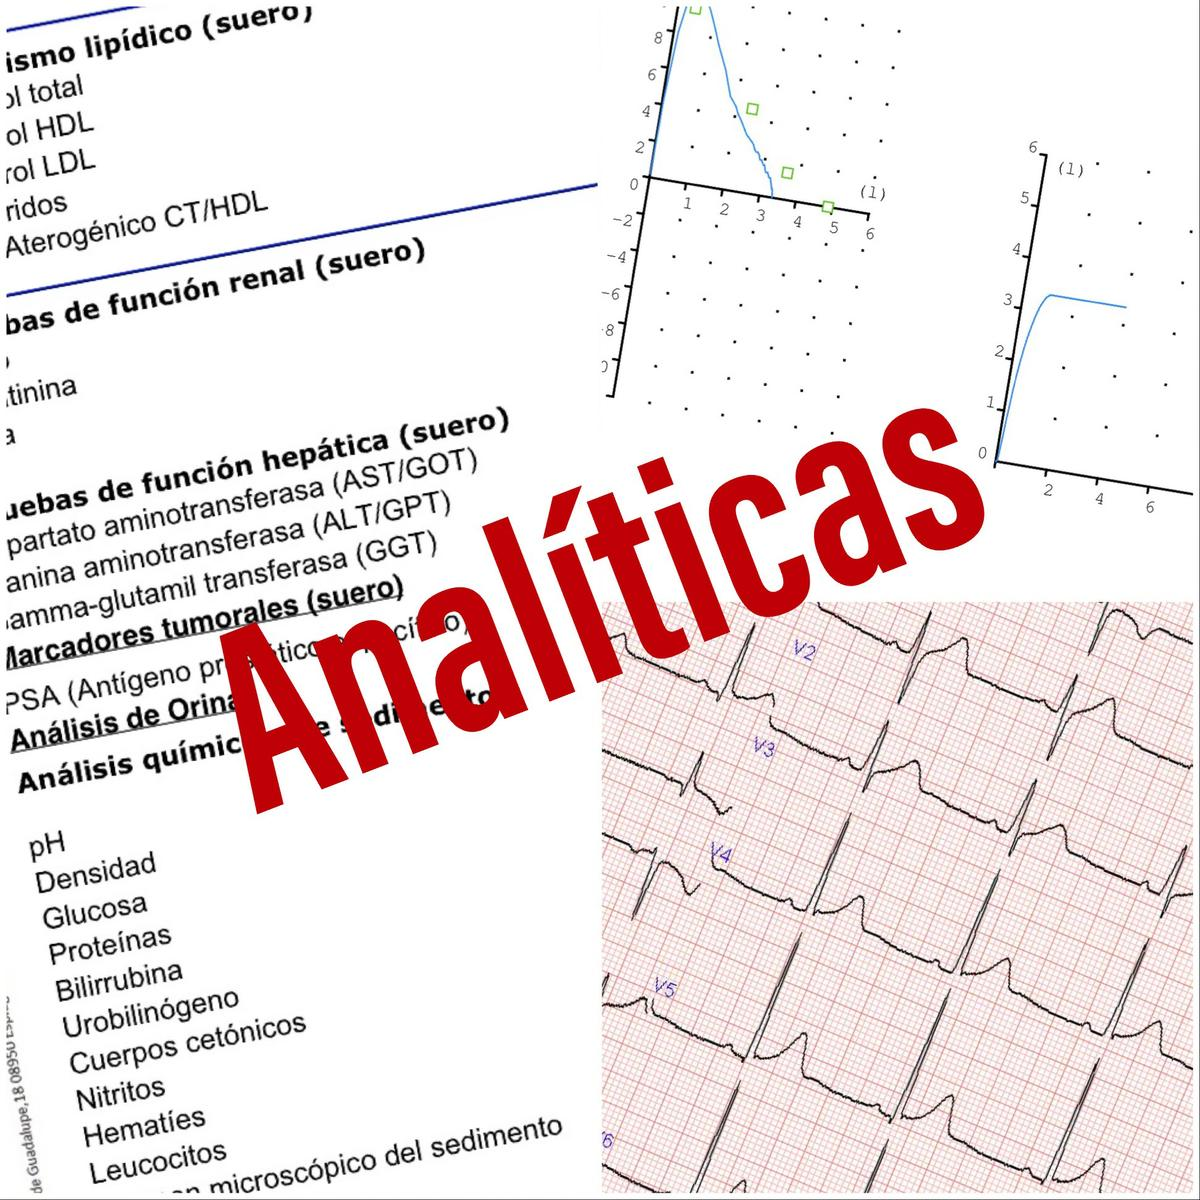 analiticas-1